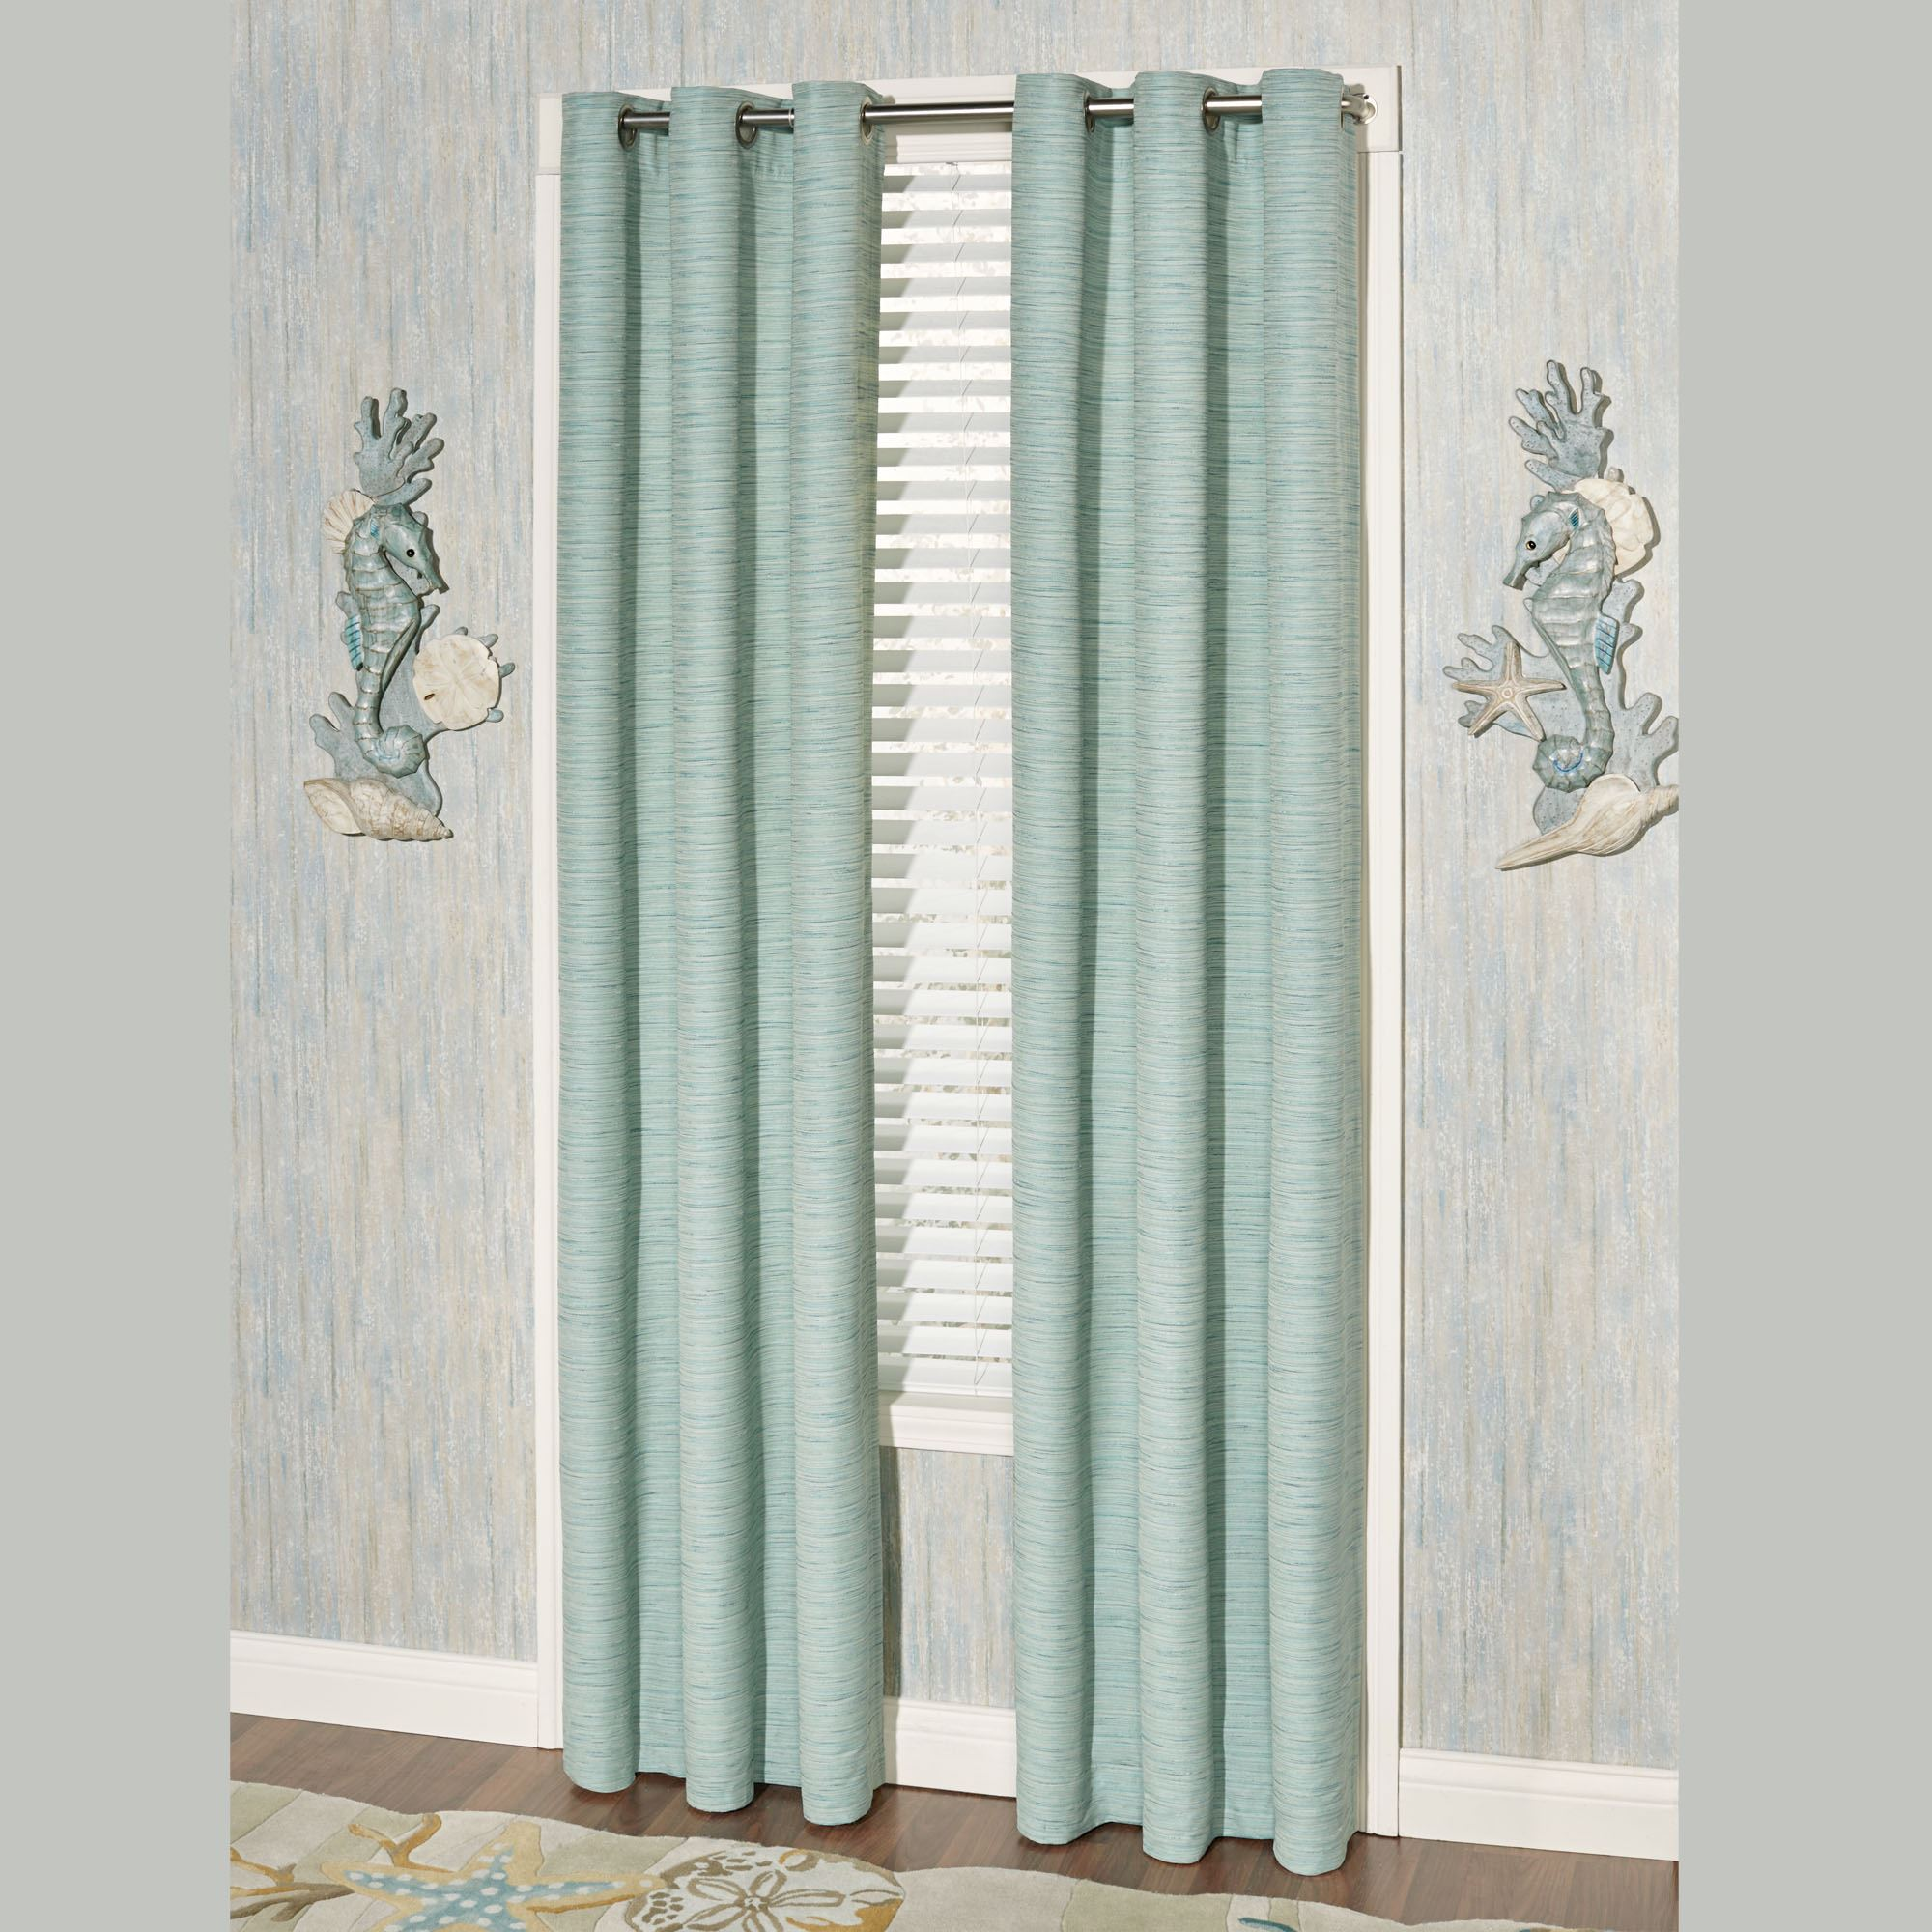 french window stripe size kohls navy curtain wayfair style cottage panels and curtains draperies white drapery full of treatments rods country definition